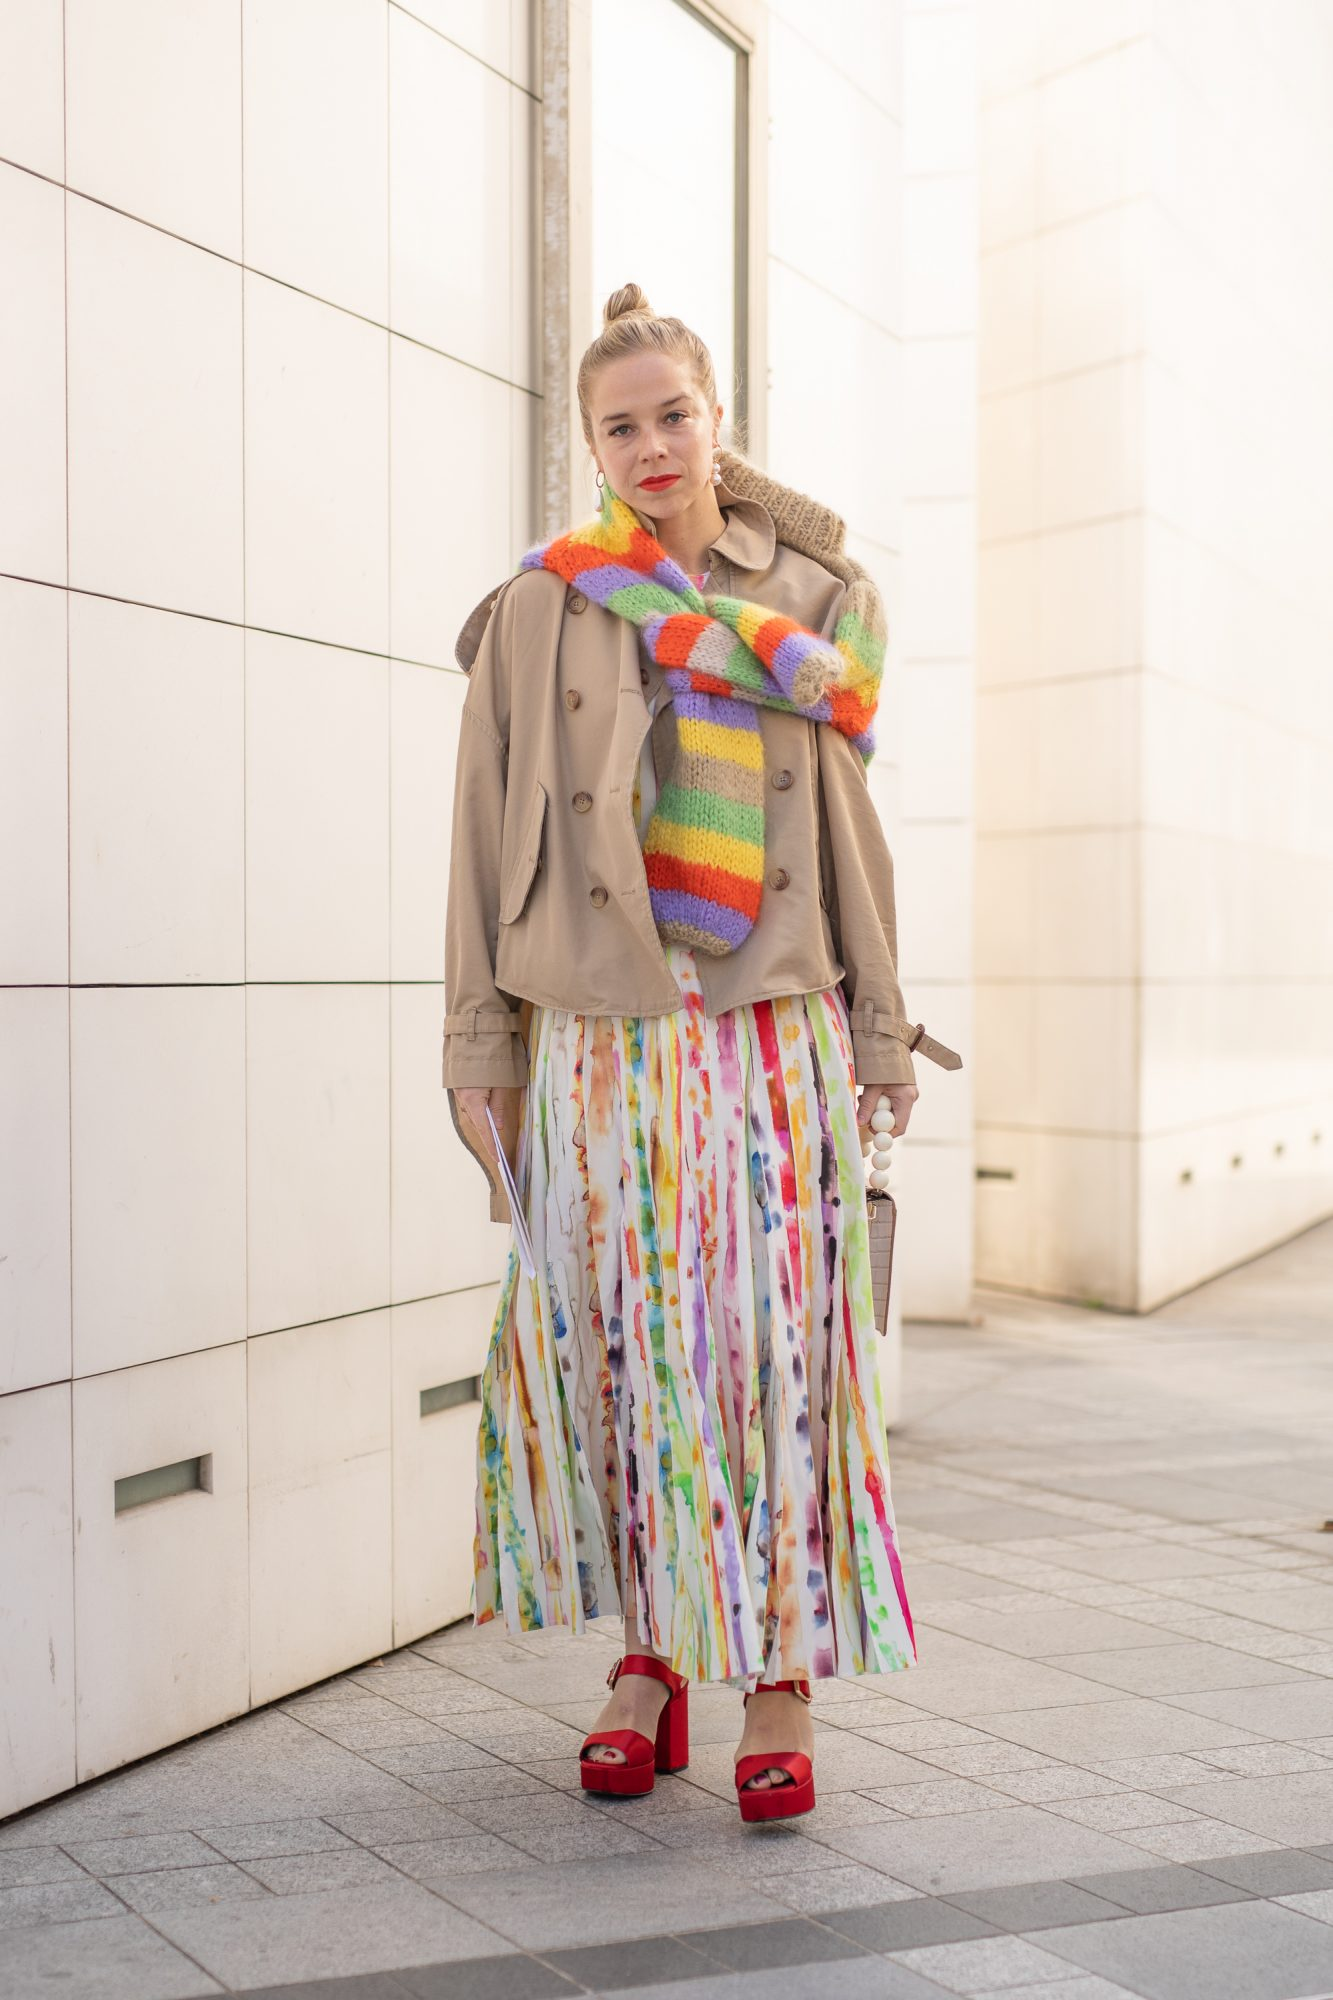 Grab a multi-color skirt